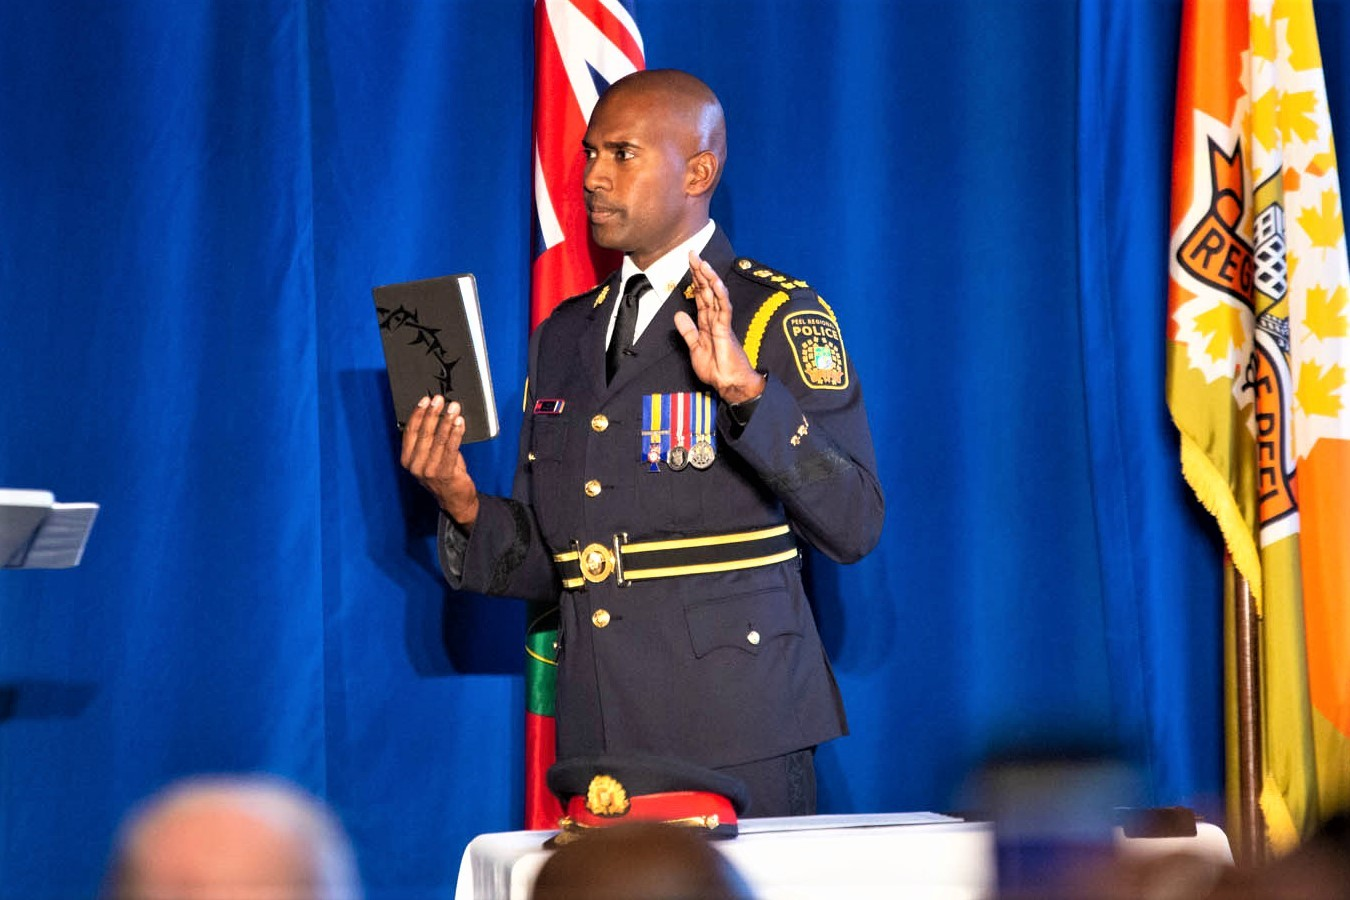 New police chief sworn in, welcomes Liberal pledge to help fight gang violence